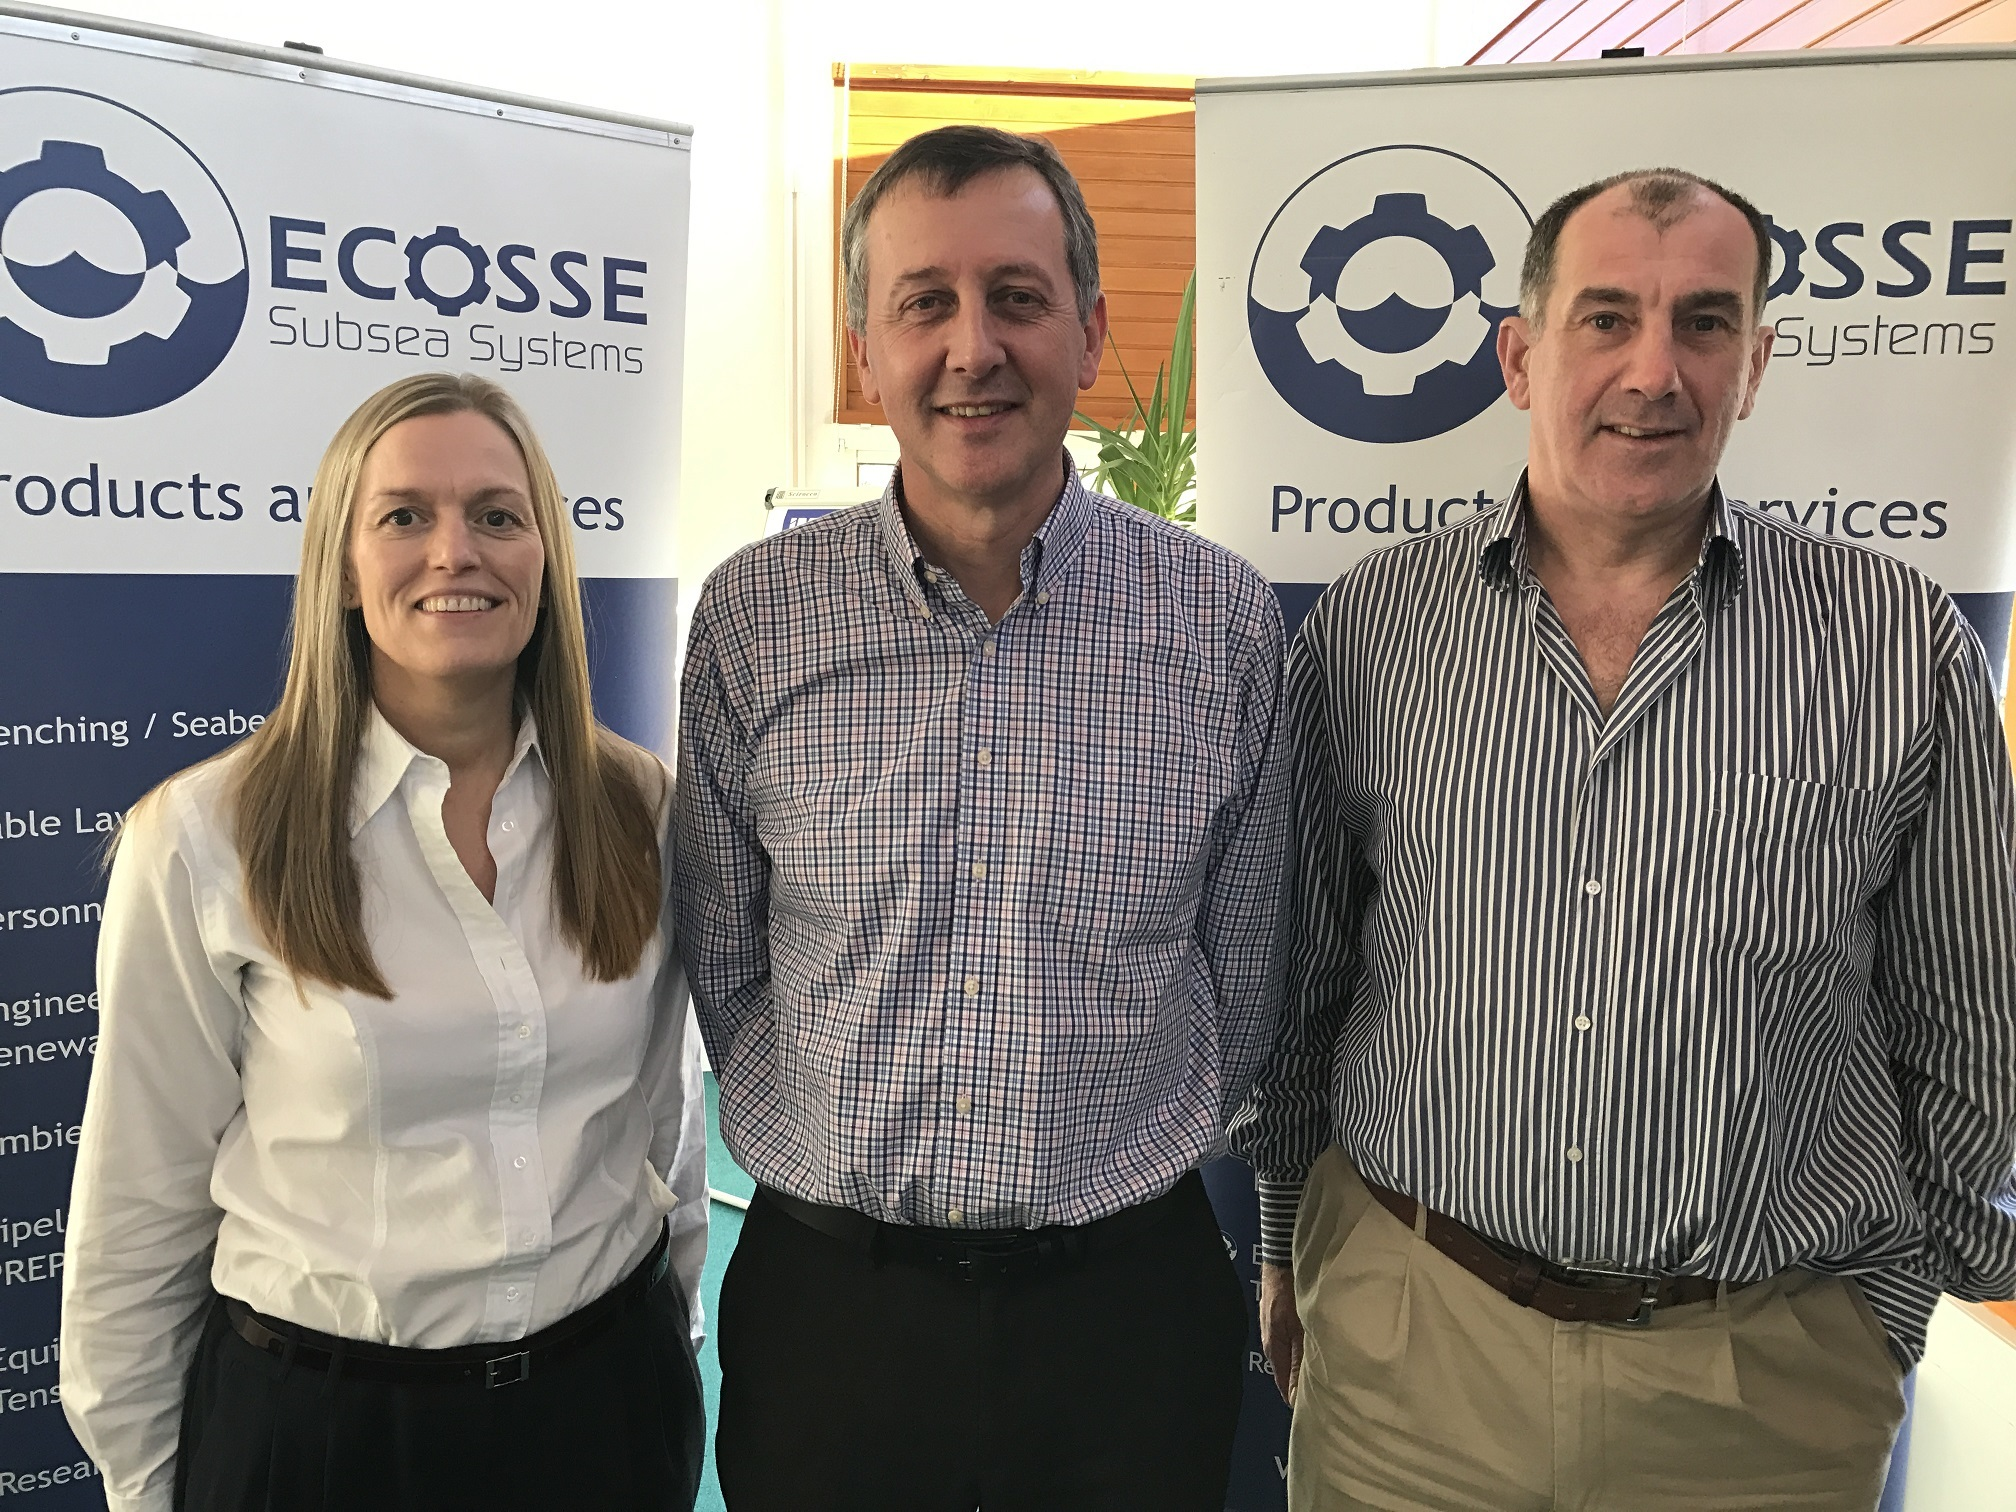 : Ecosse Subsea Systems commercial manager Iain Middleton (centre) with operations director Mo Petrie, left, and managing director Mike Wilson